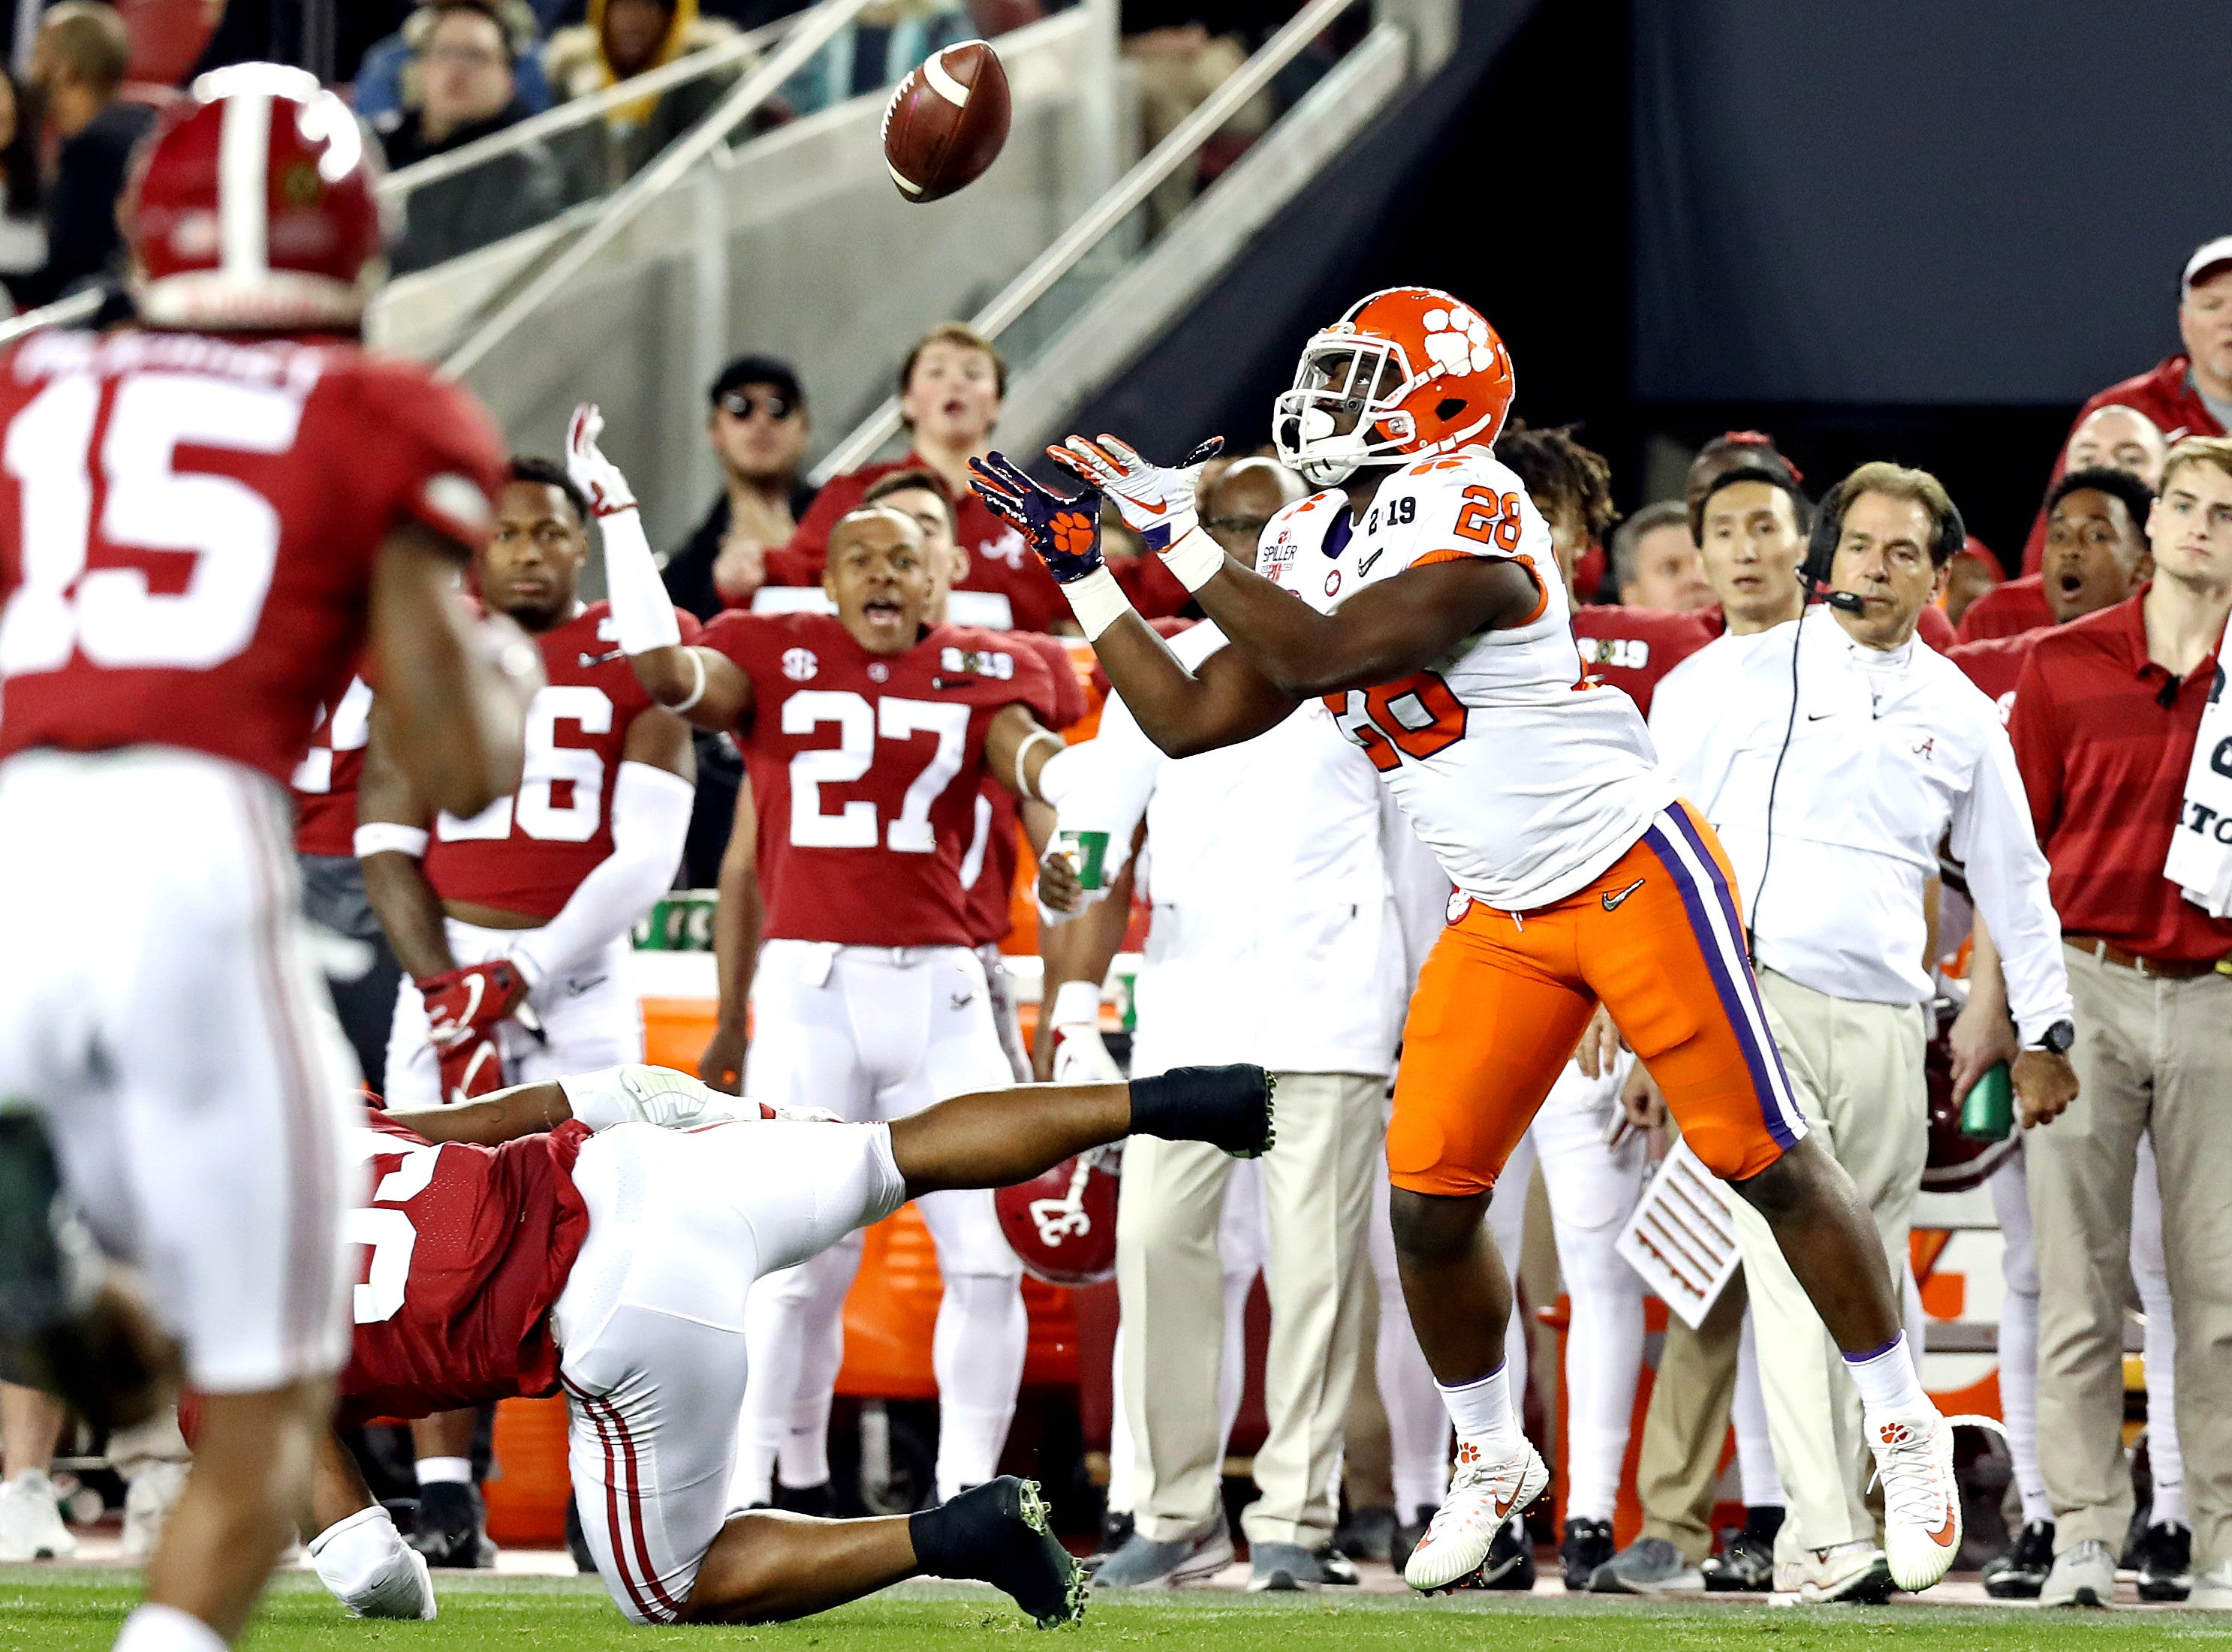 Jan 7, 2019; Santa Clara, CA, USA; Clemson Tigers running back Tavien Feaster (28) catches the ball during the first half against the Alabama Crimson Tide during the 2019 College Football Playoff Championship game at Levi's Stadium. Mandatory Credit: Matthew Emmons-USA TODAY Sports